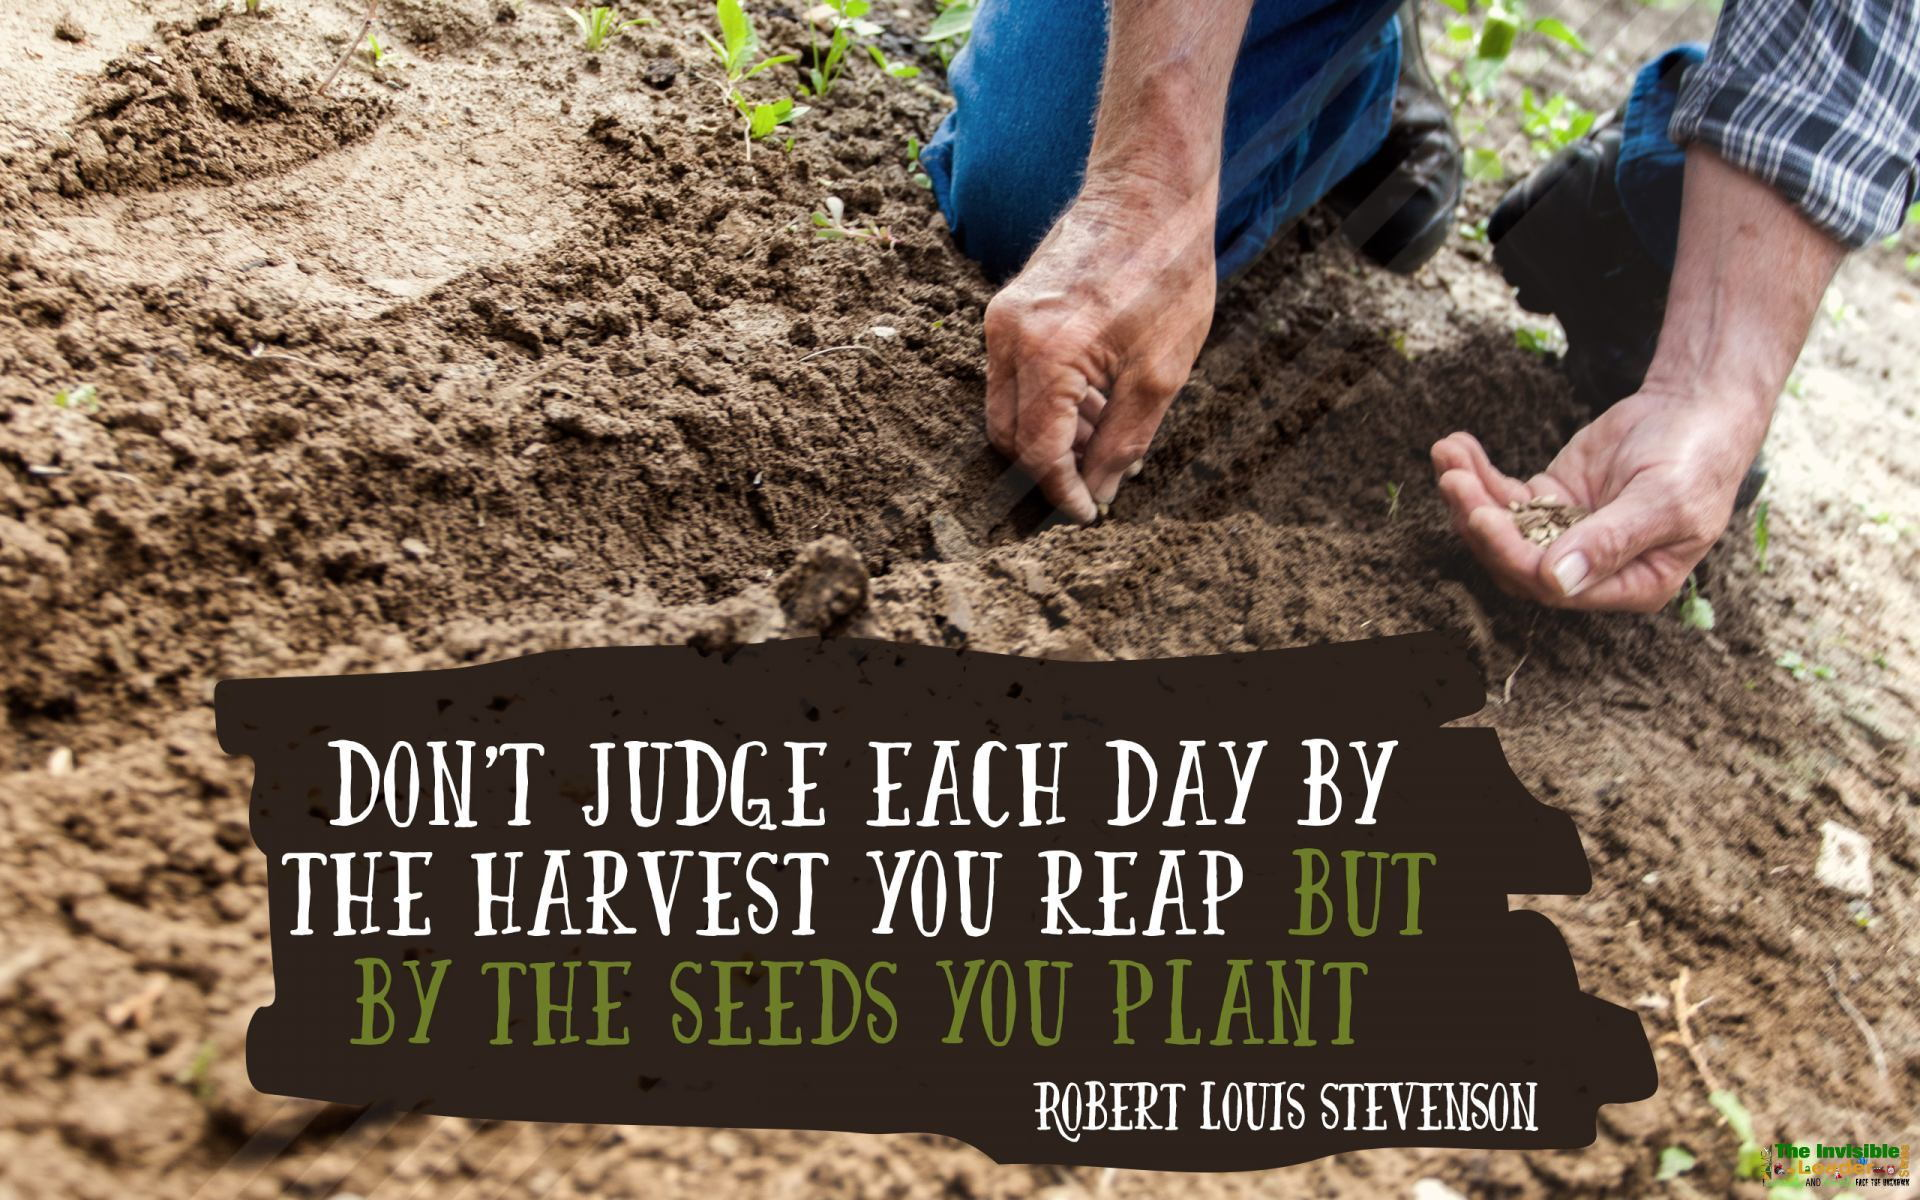 """DON'T JUDGE EACH DAY BY THE HARVEST YOU REAP BUT BY THE SEEDS YOU PLANT"" ROBERT LOUIS STEVENSON! [1920×1200]"